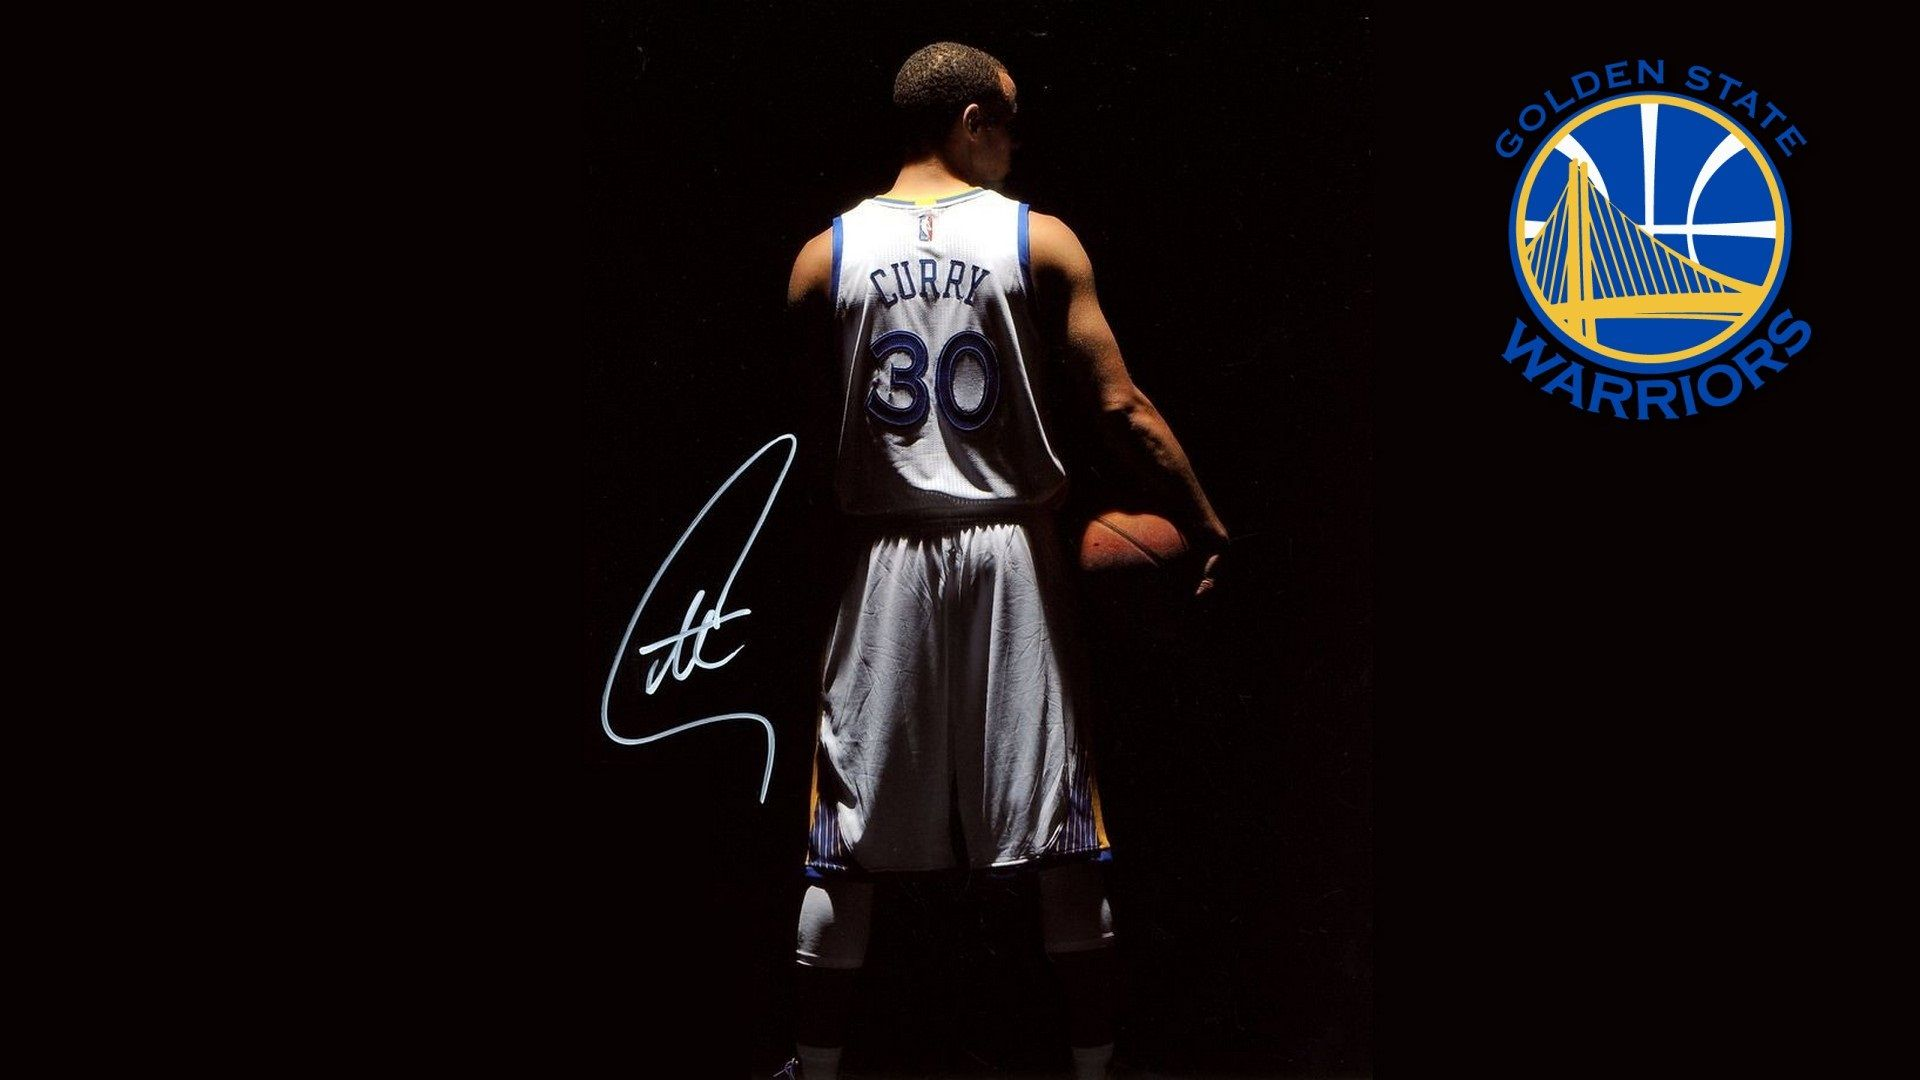 stephen curry background wallpapers free download